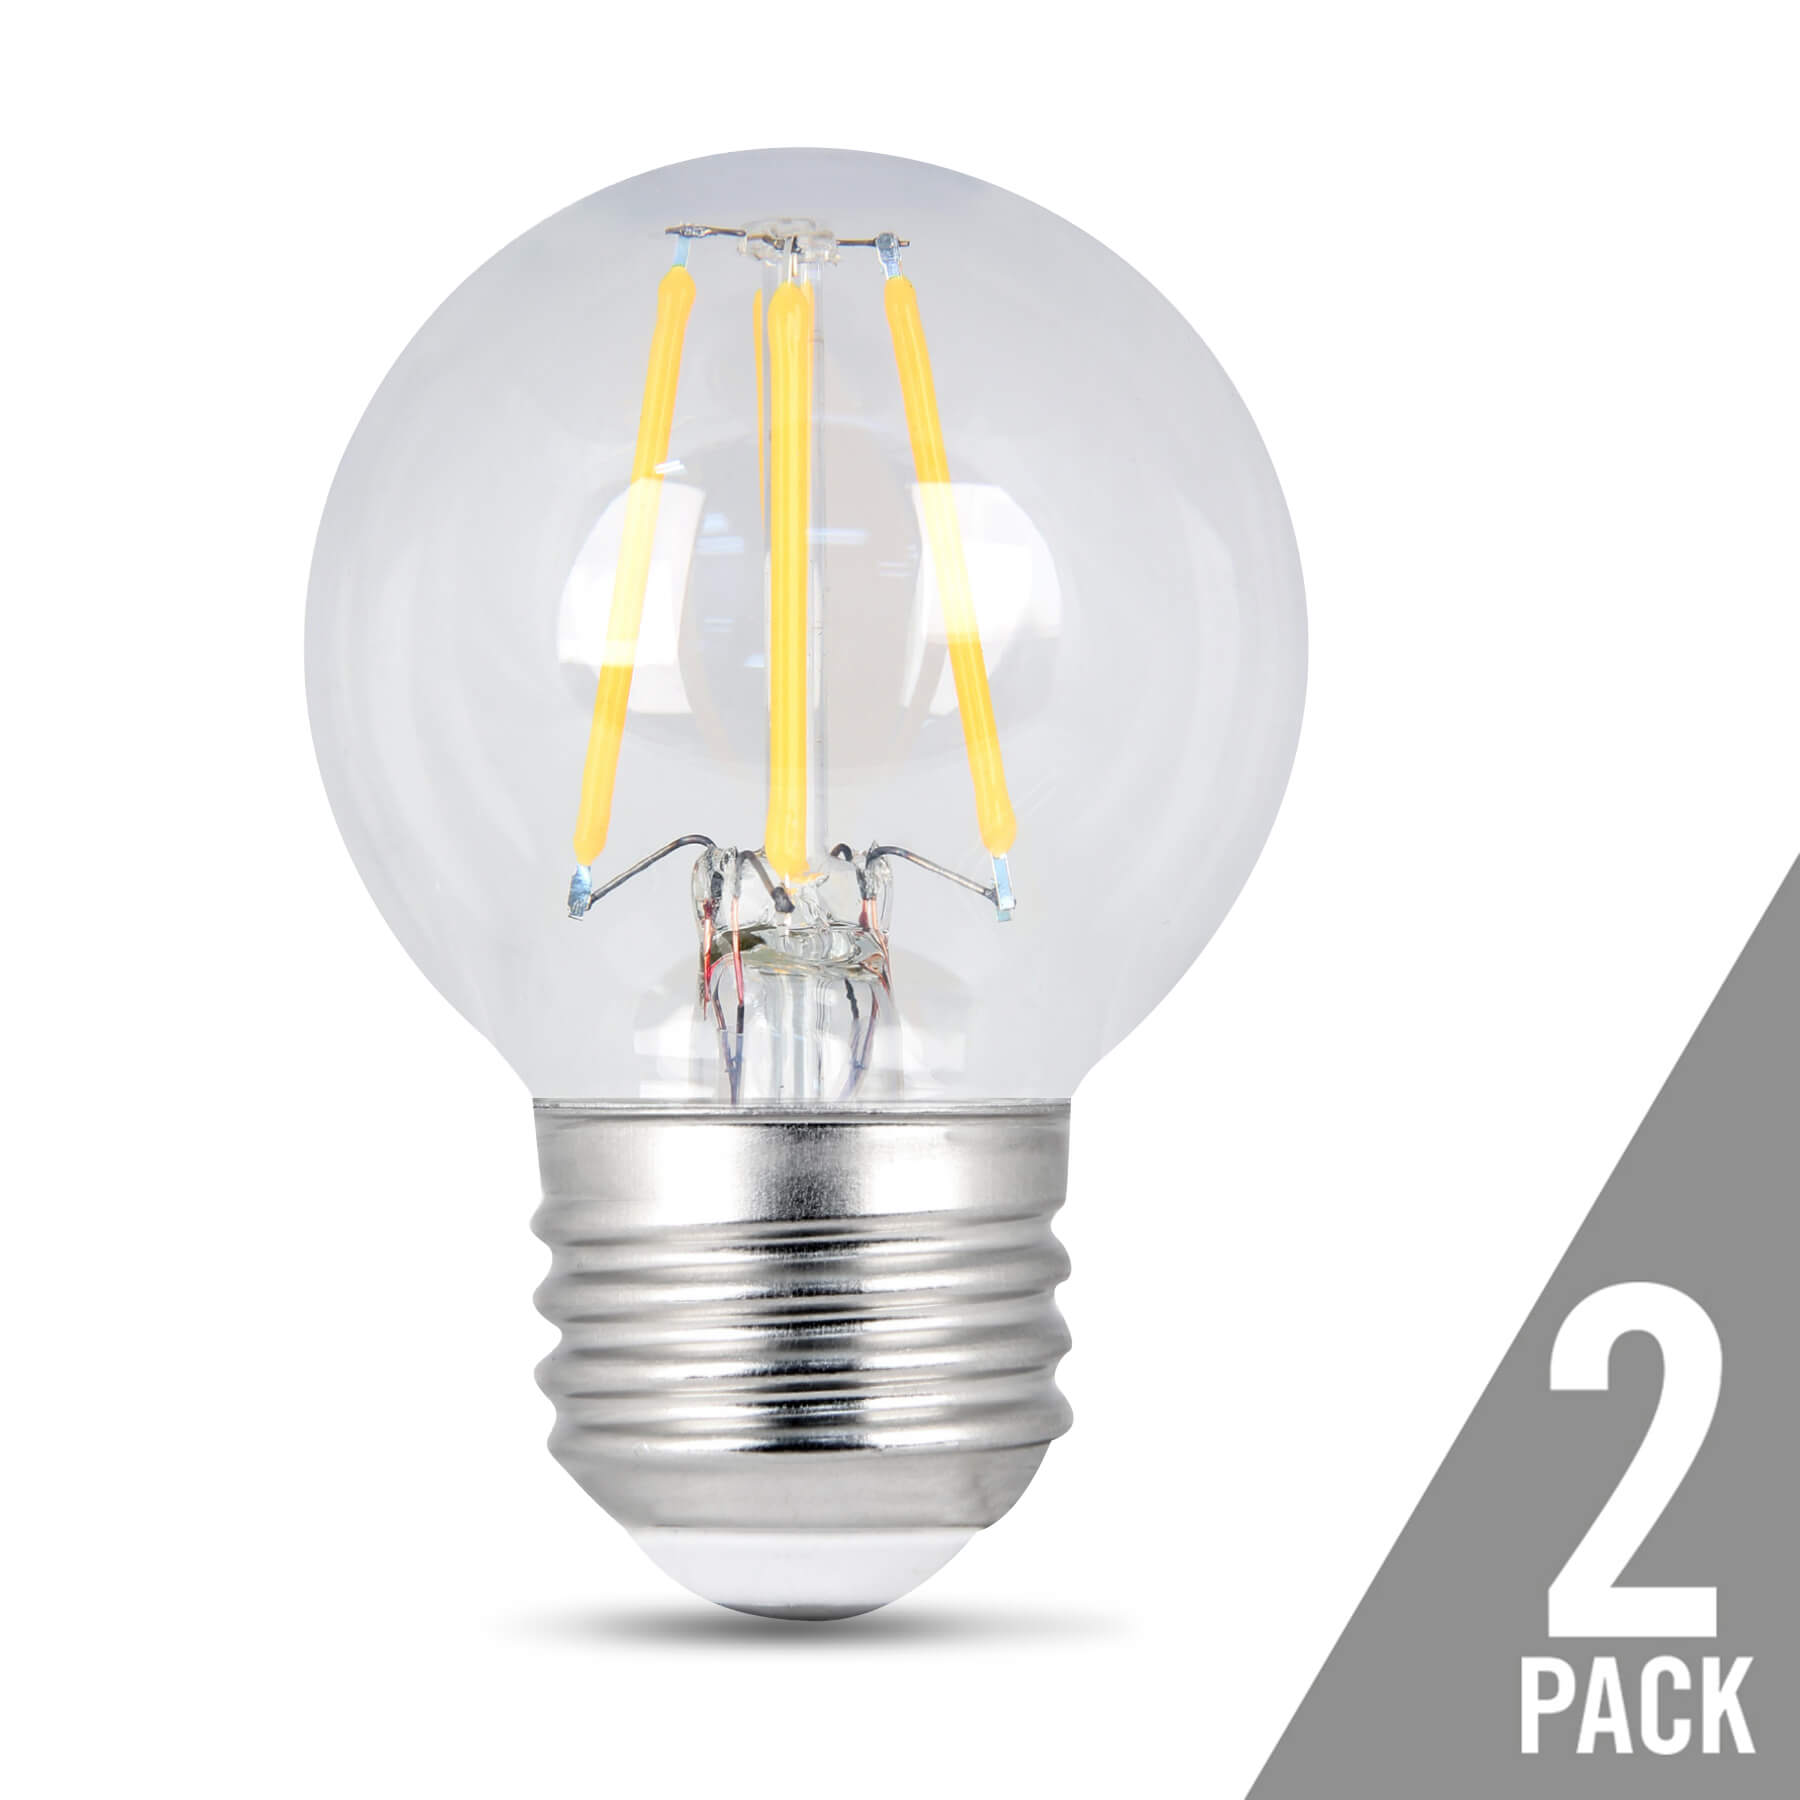 300 Lumen Vintage 2700k Dimmable Led G16 1 2 Feit Electric